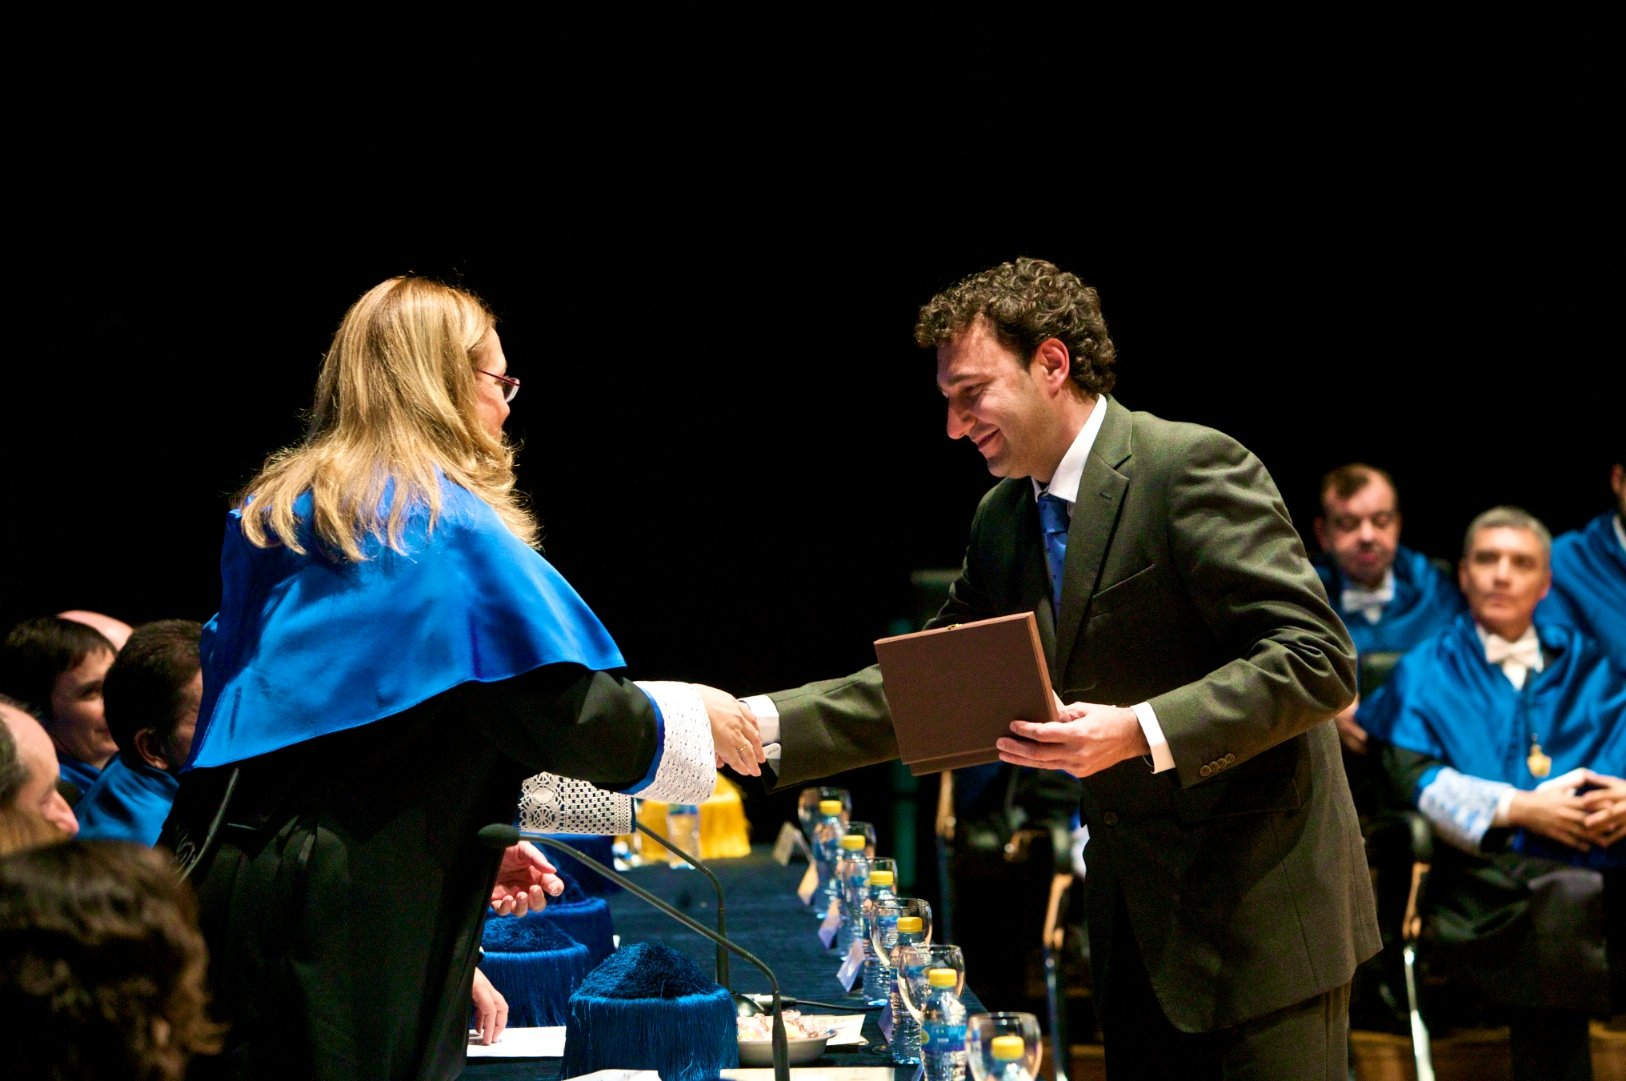 2011 Saint Alberto Magno award from the University of Alicante.